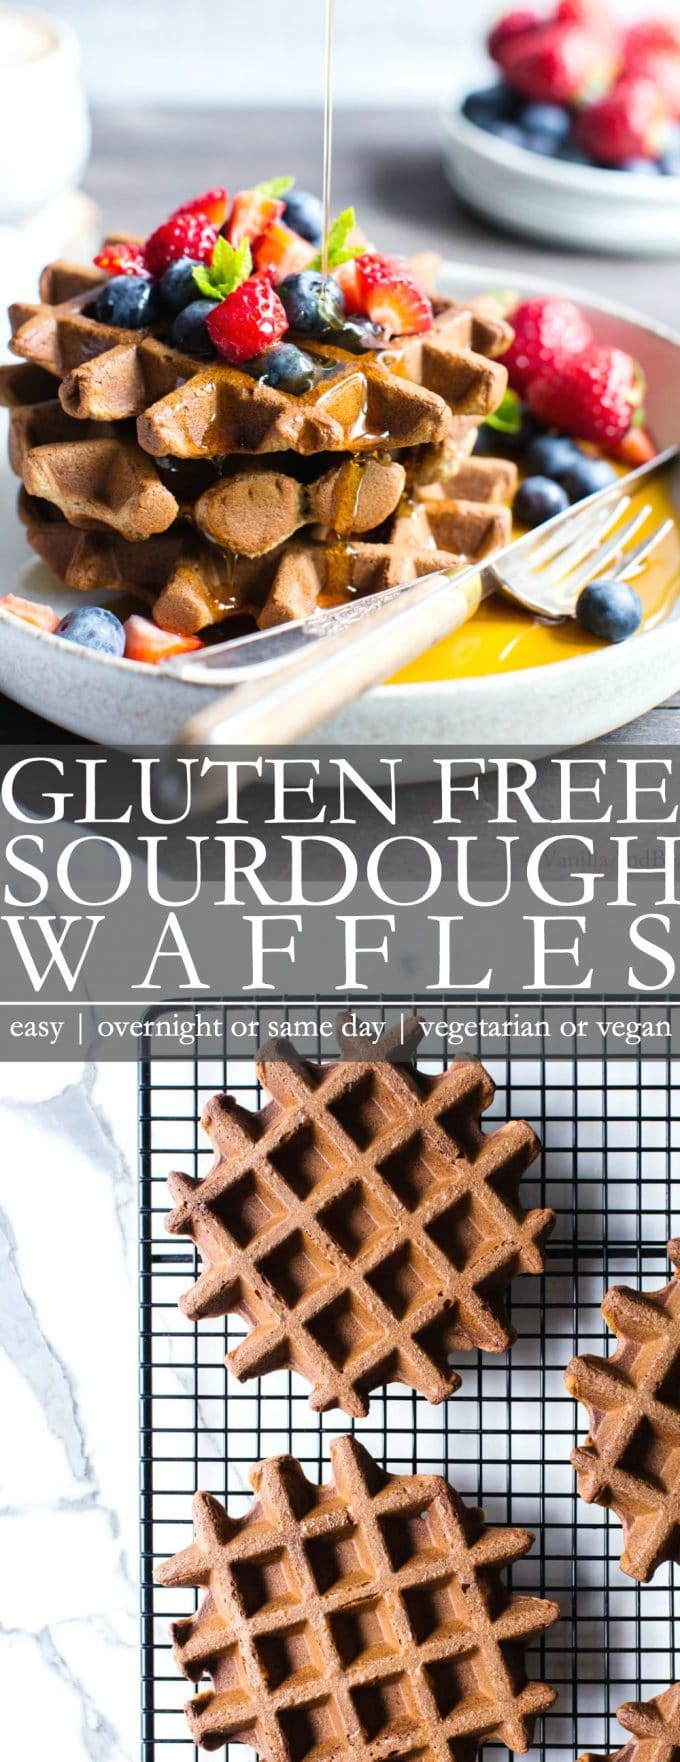 Gluten Free Sourdough Waffles Pinterest Pin